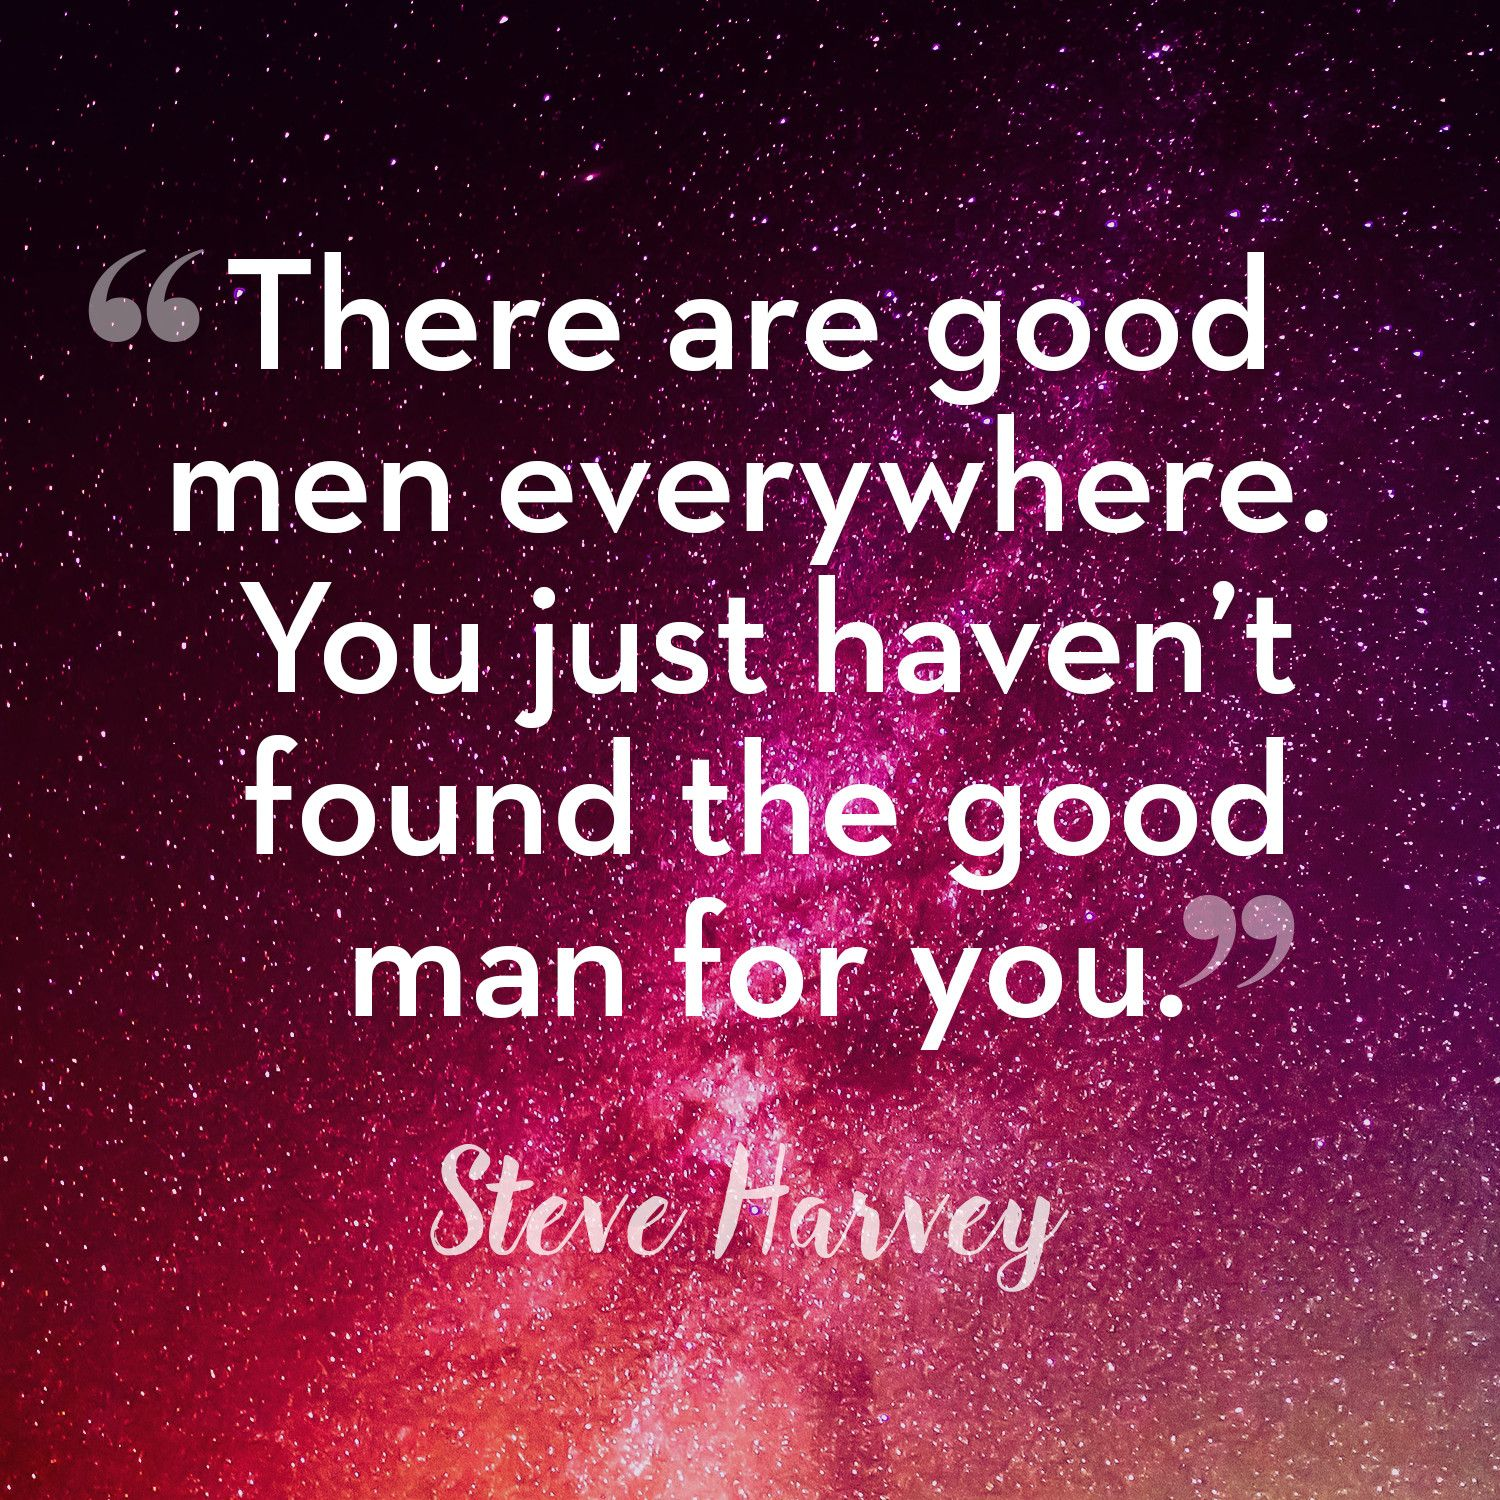 Powerful Love Quotes For Him 50 Best Relationship Quotes From Steve Harvey  Steve Harvey